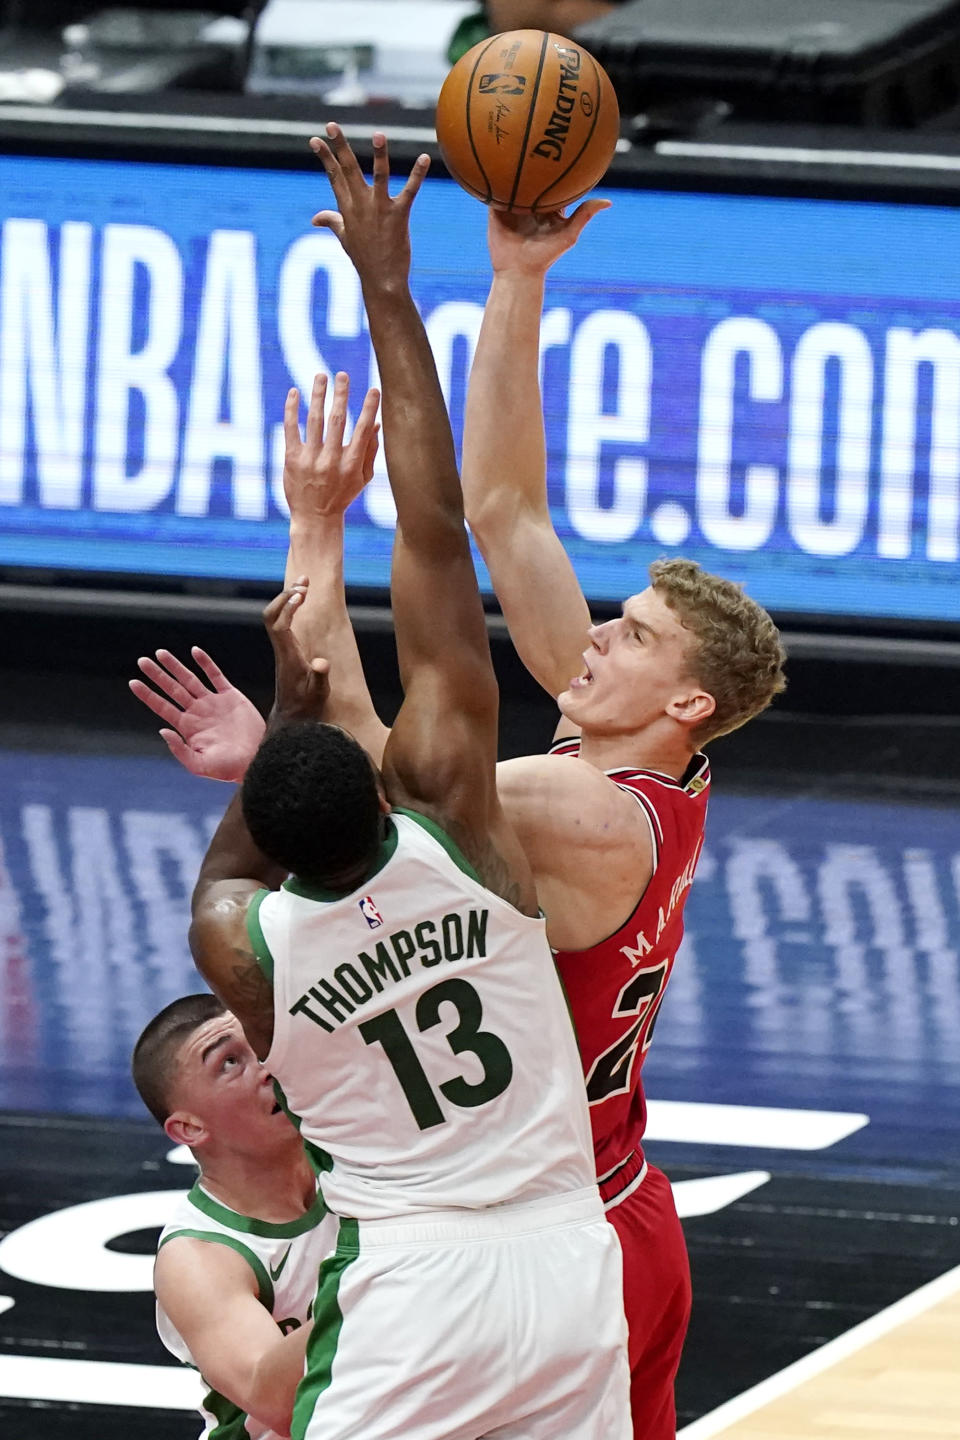 Chicago Bulls forward Lauri Markkanen, right, shoots against Boston Celtics guard Payton Pritchard and center Tristan Thompson (13) during the first half of an NBA basketball game in Chicago, Friday, May 7, 2021. (AP Photo/Nam Y. Huh)